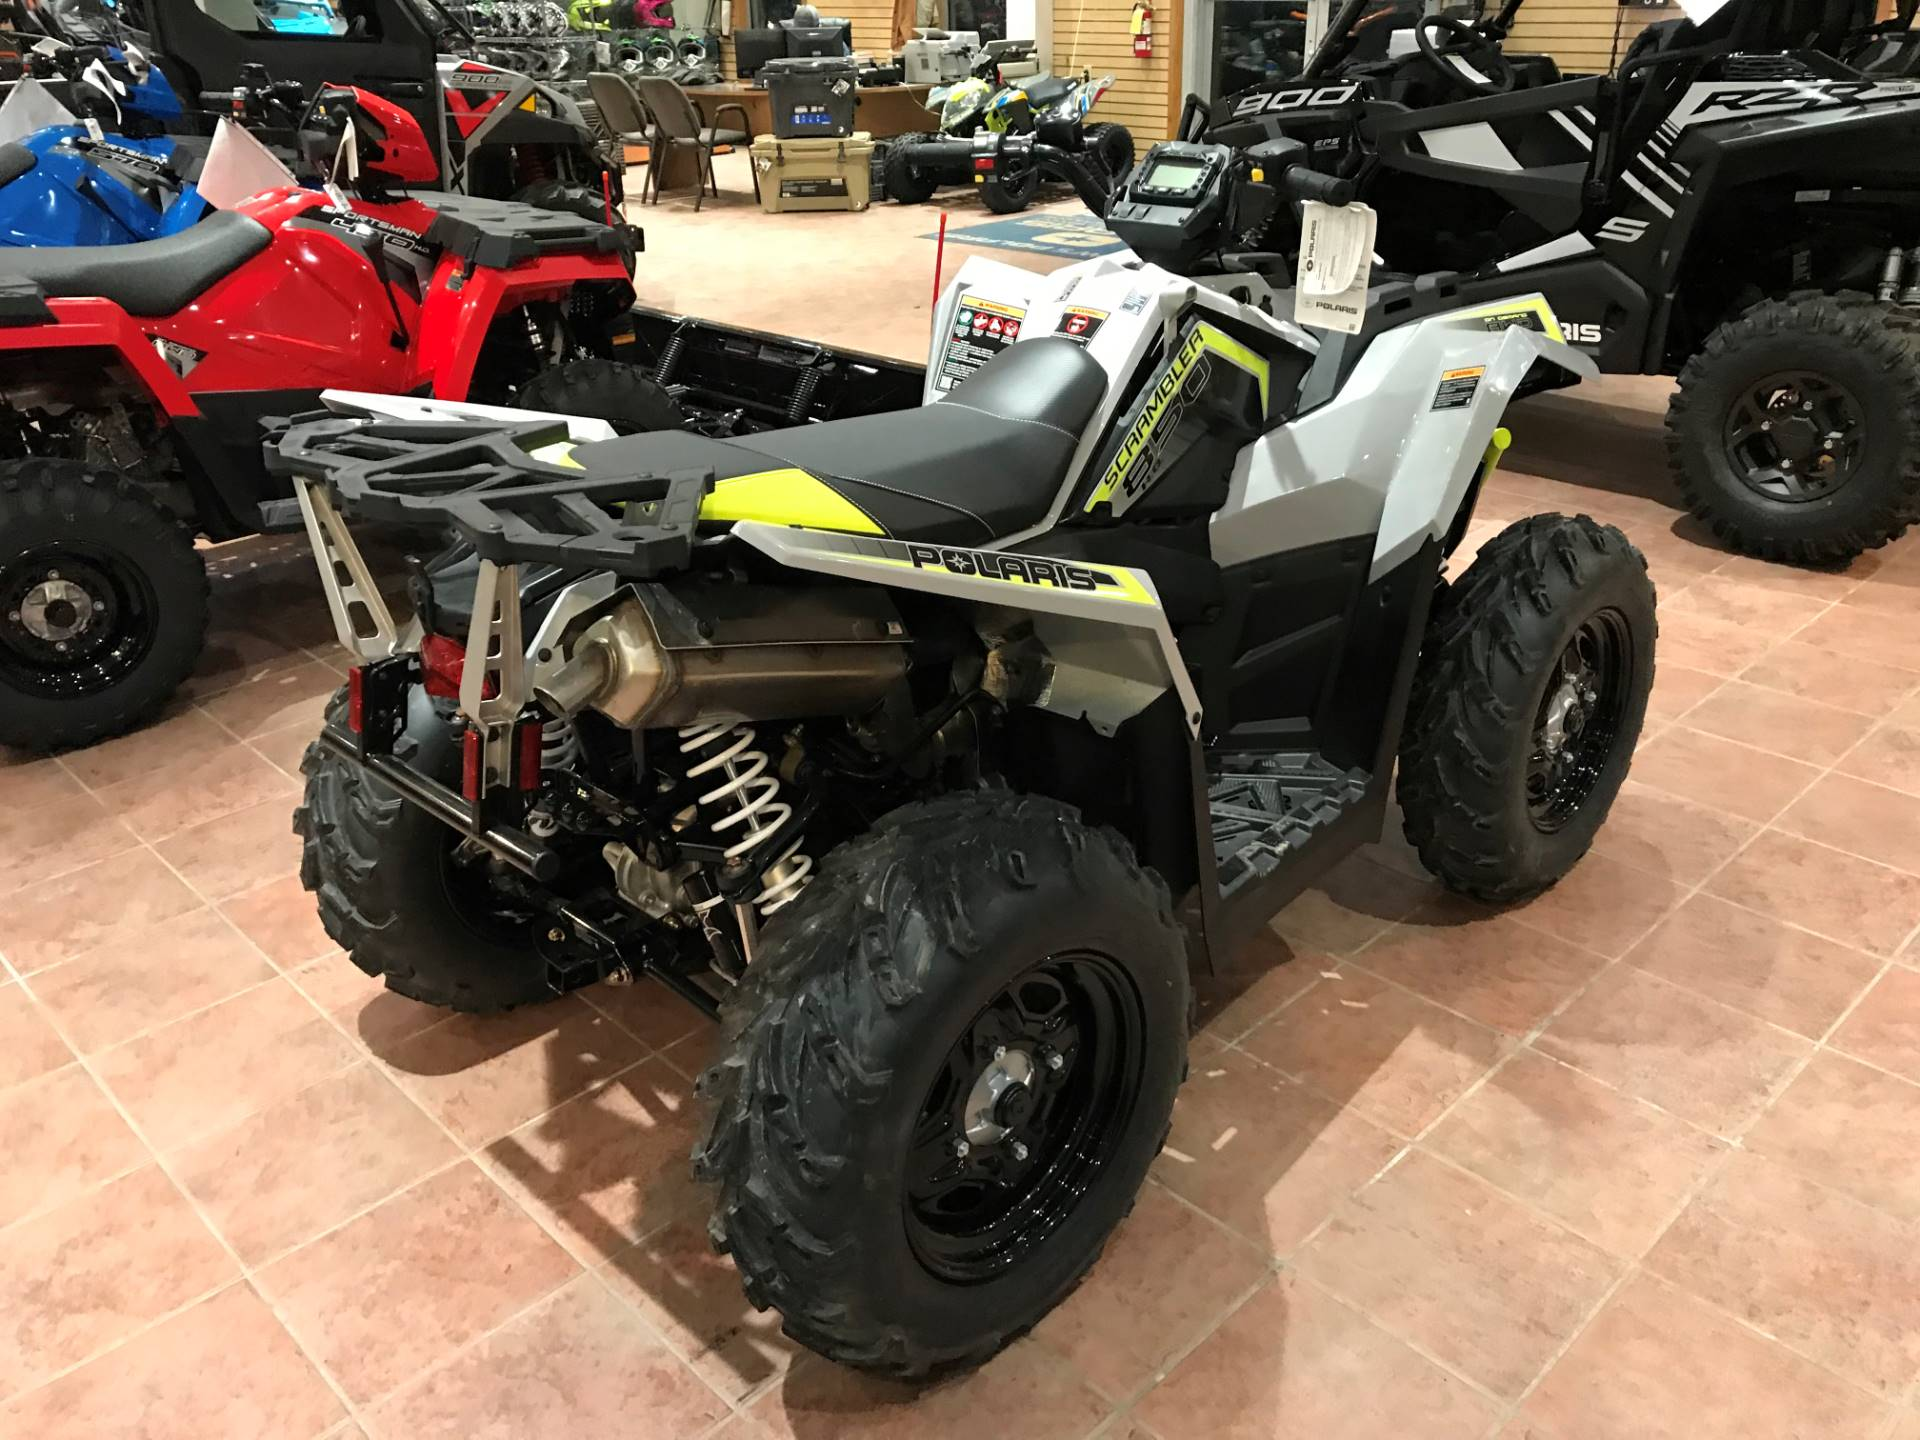 2019 Polaris Scrambler 850 in Beaver Falls, Pennsylvania - Photo 4